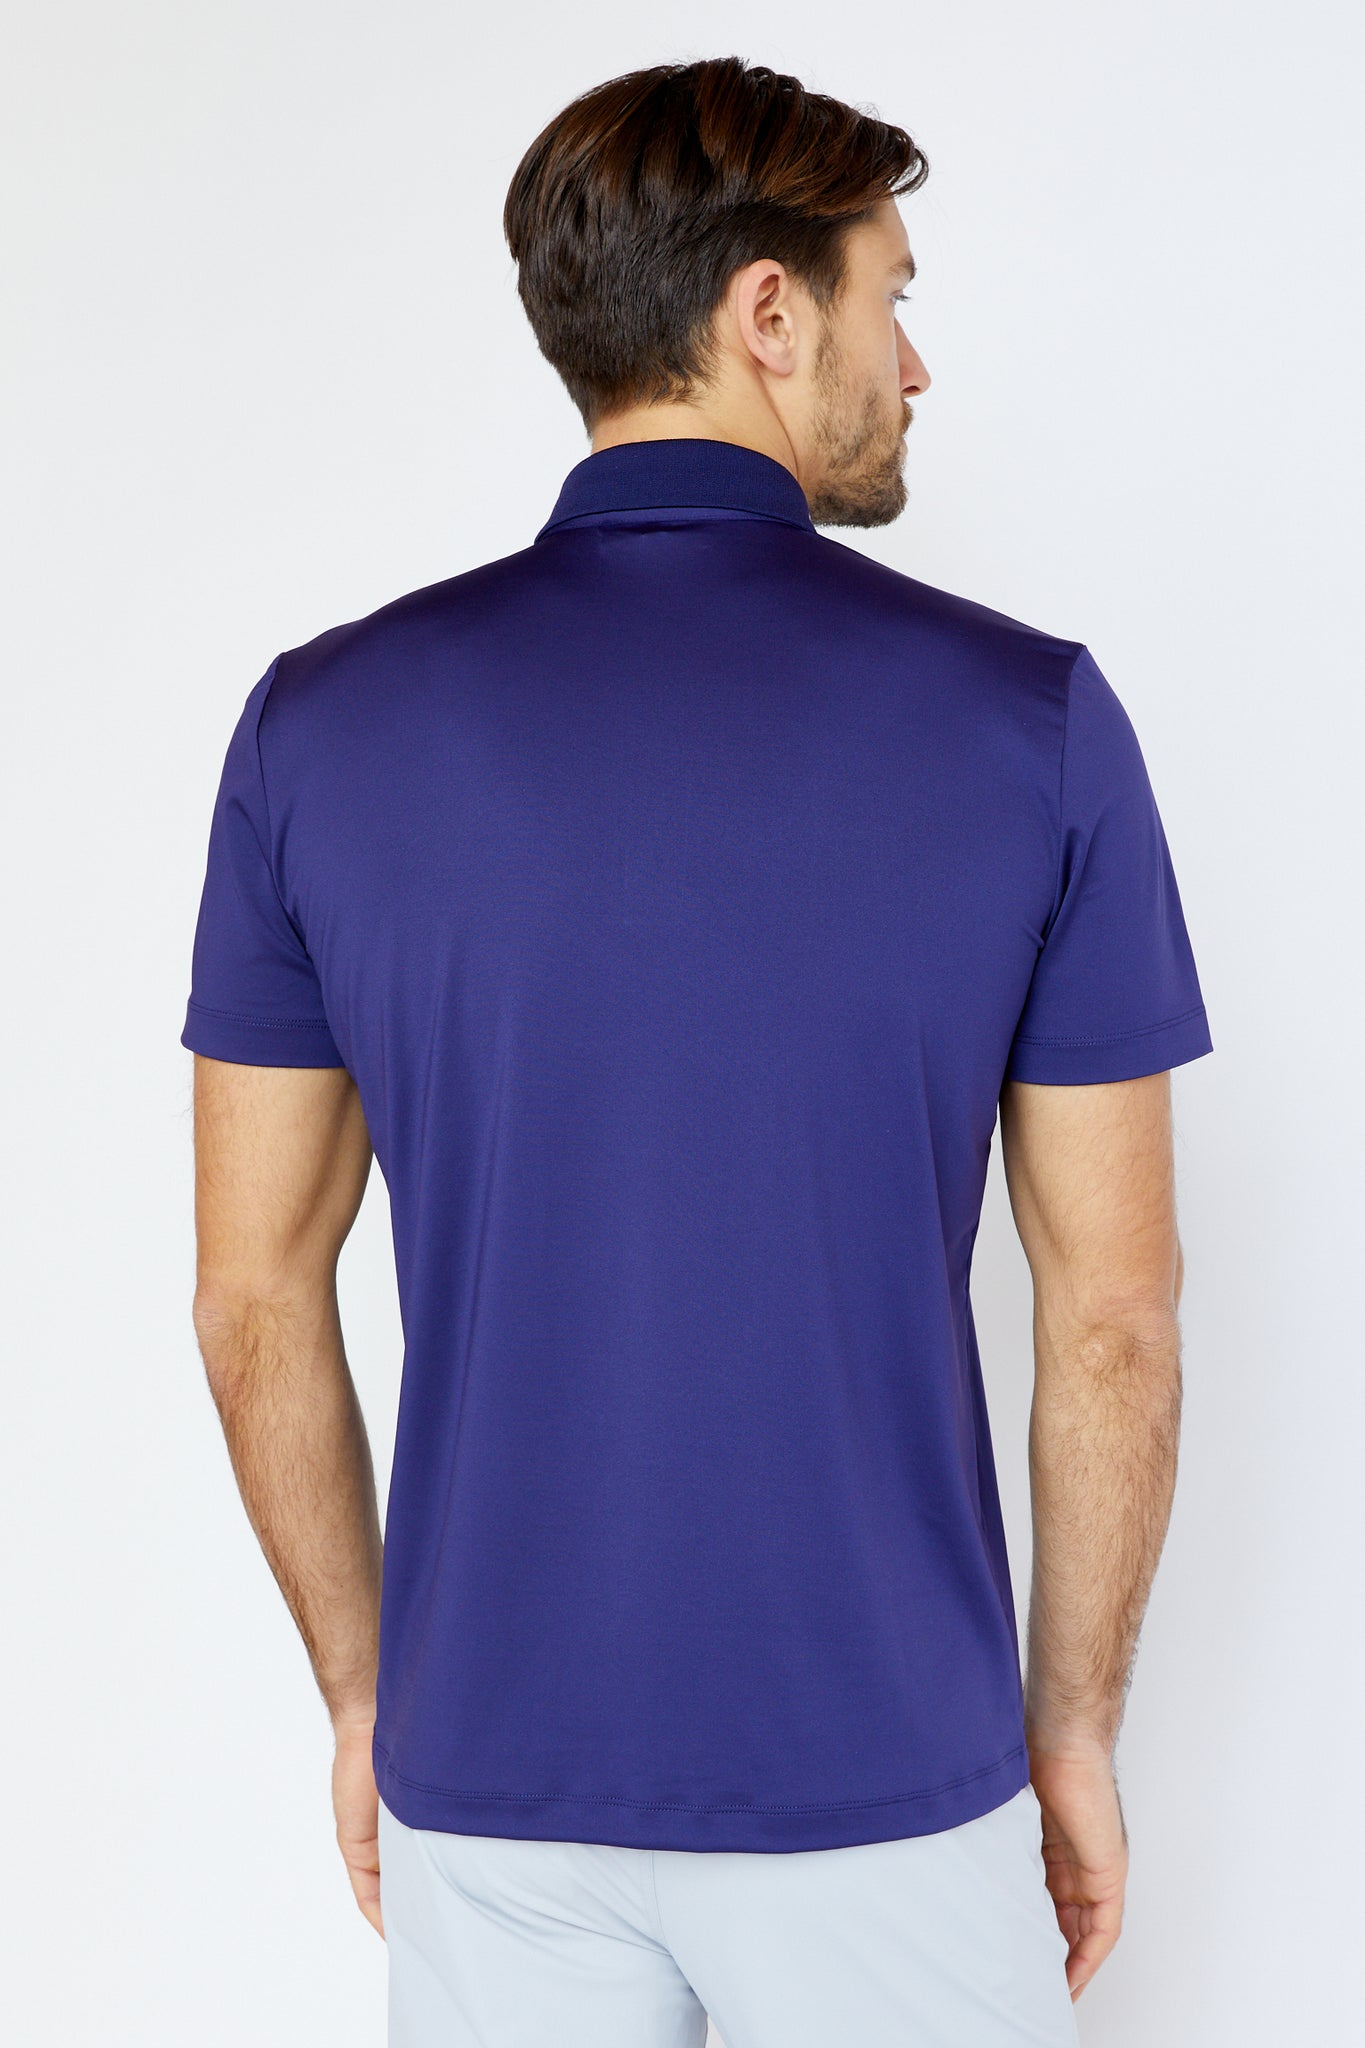 Polk Polo in Astral Aura